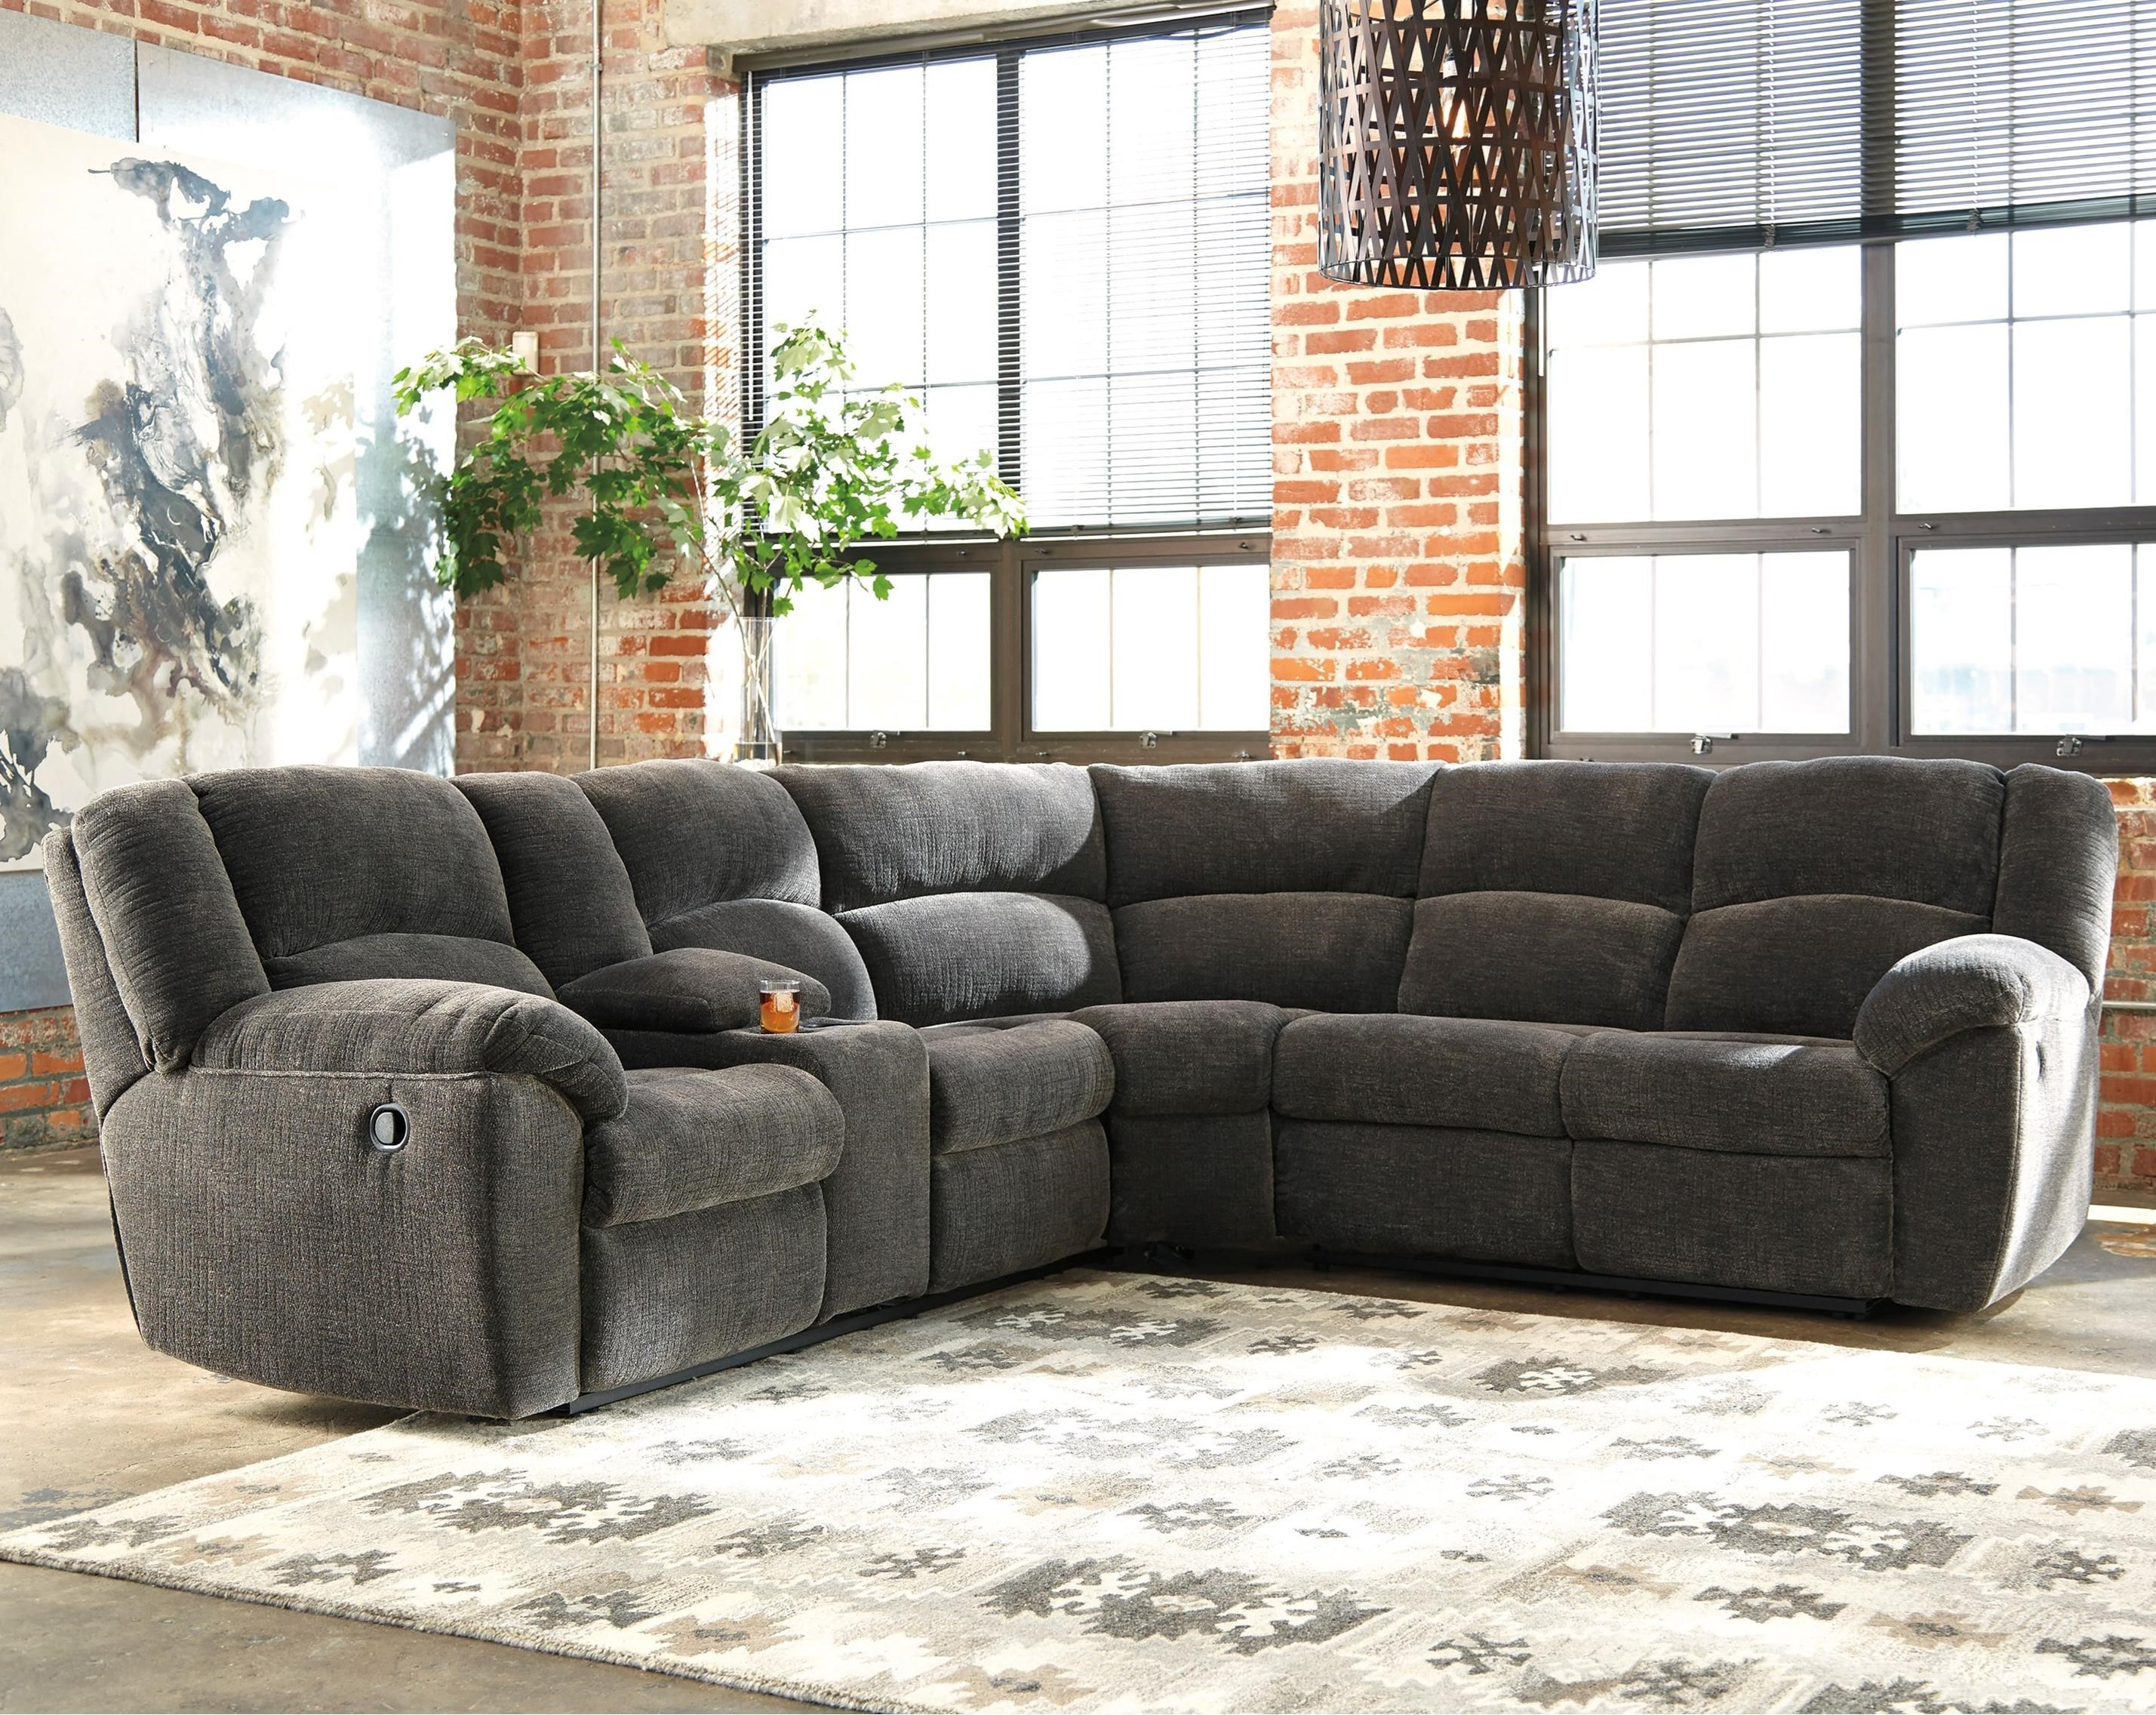 reclinable sectional sofas antique furniture sofa benchcraft timpson reclining with storage